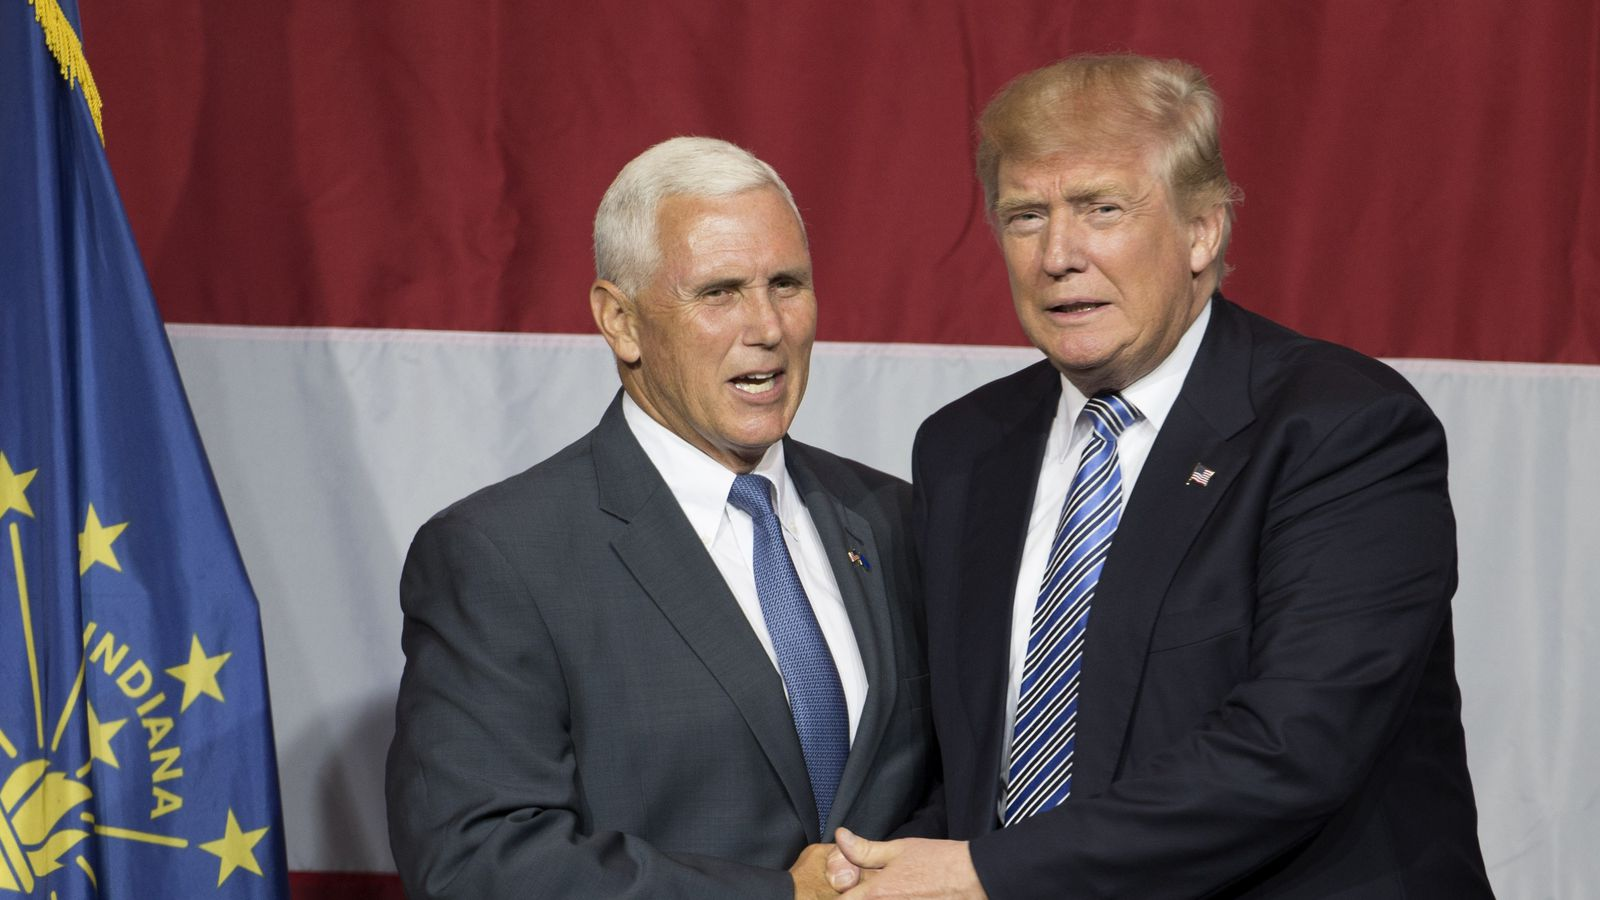 Mike Pence as Donald Trump's vice president is an extra